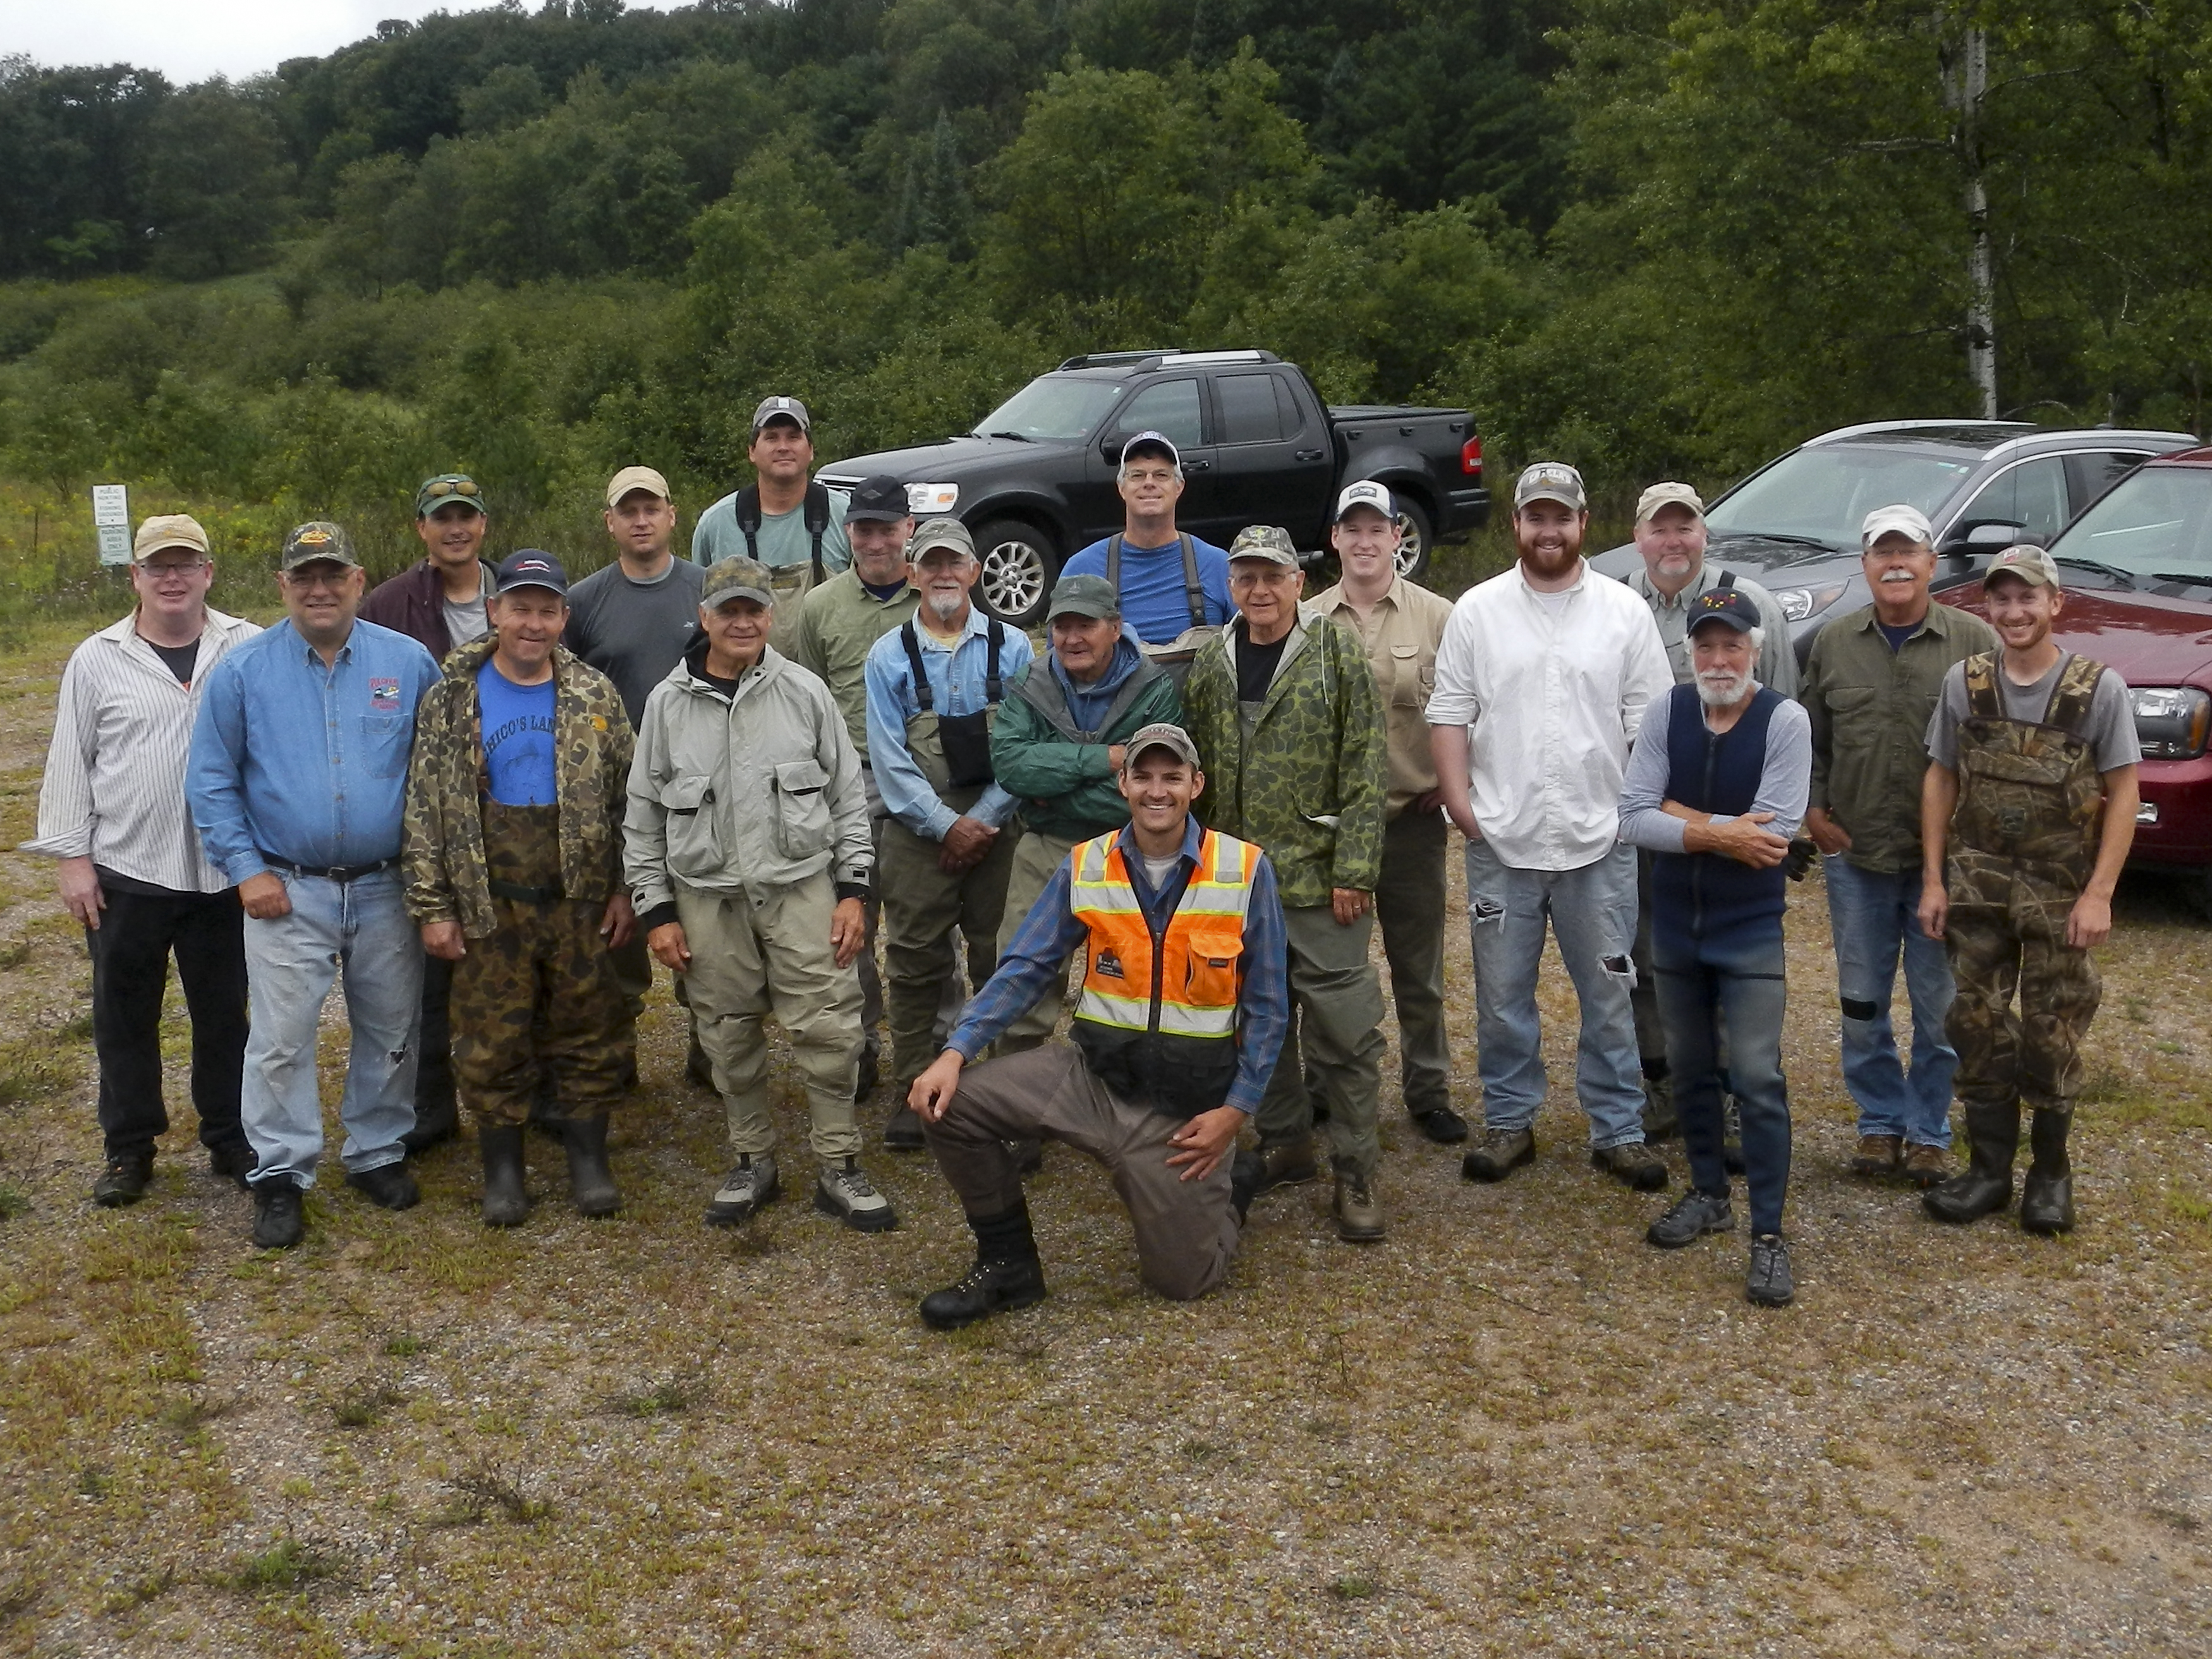 Ninemile Creek brushing crew picture